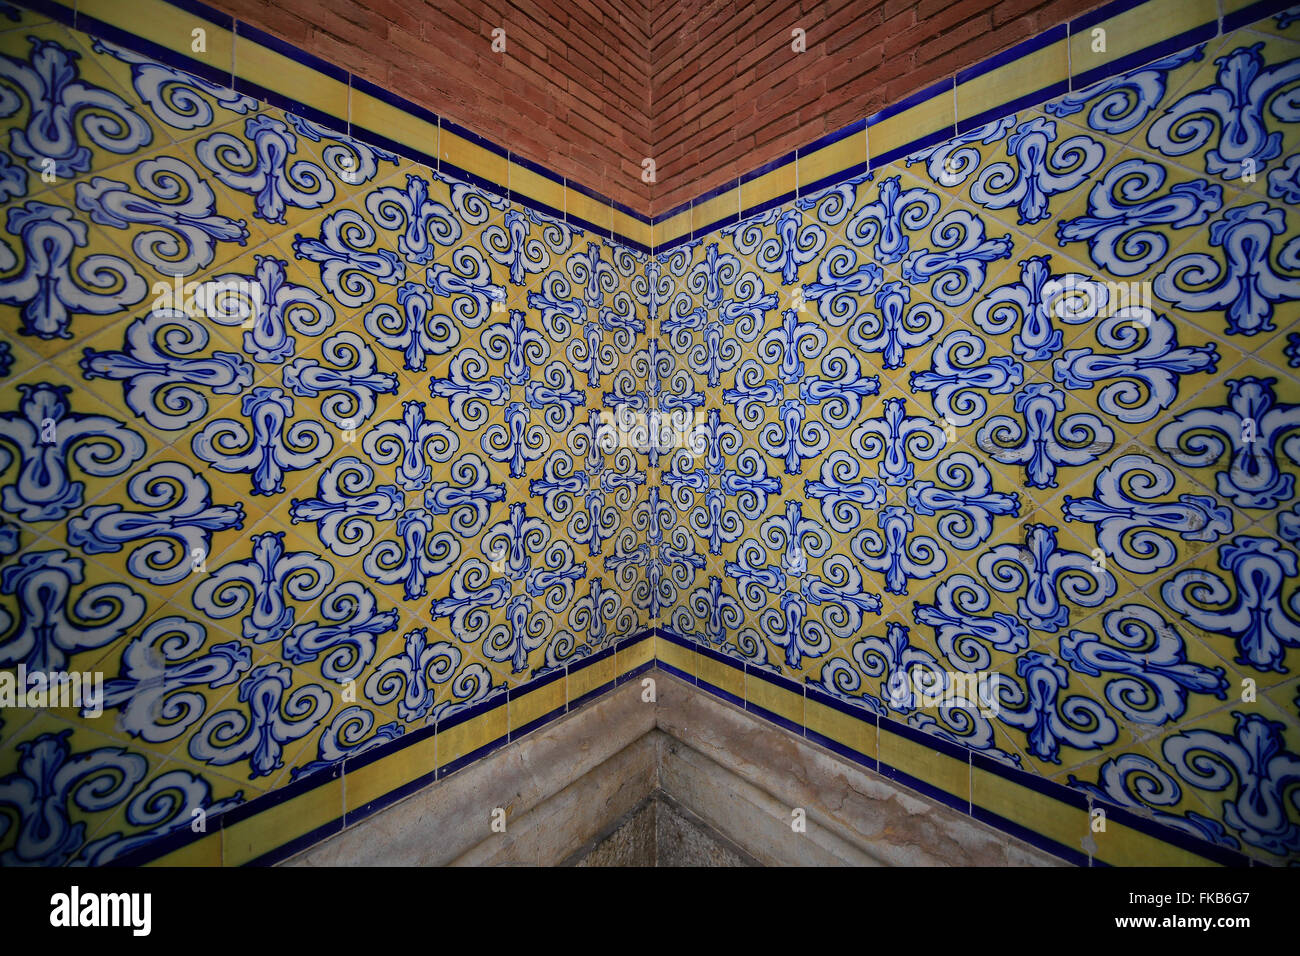 Spanish wall tiles yellow white and blue - Stock Image